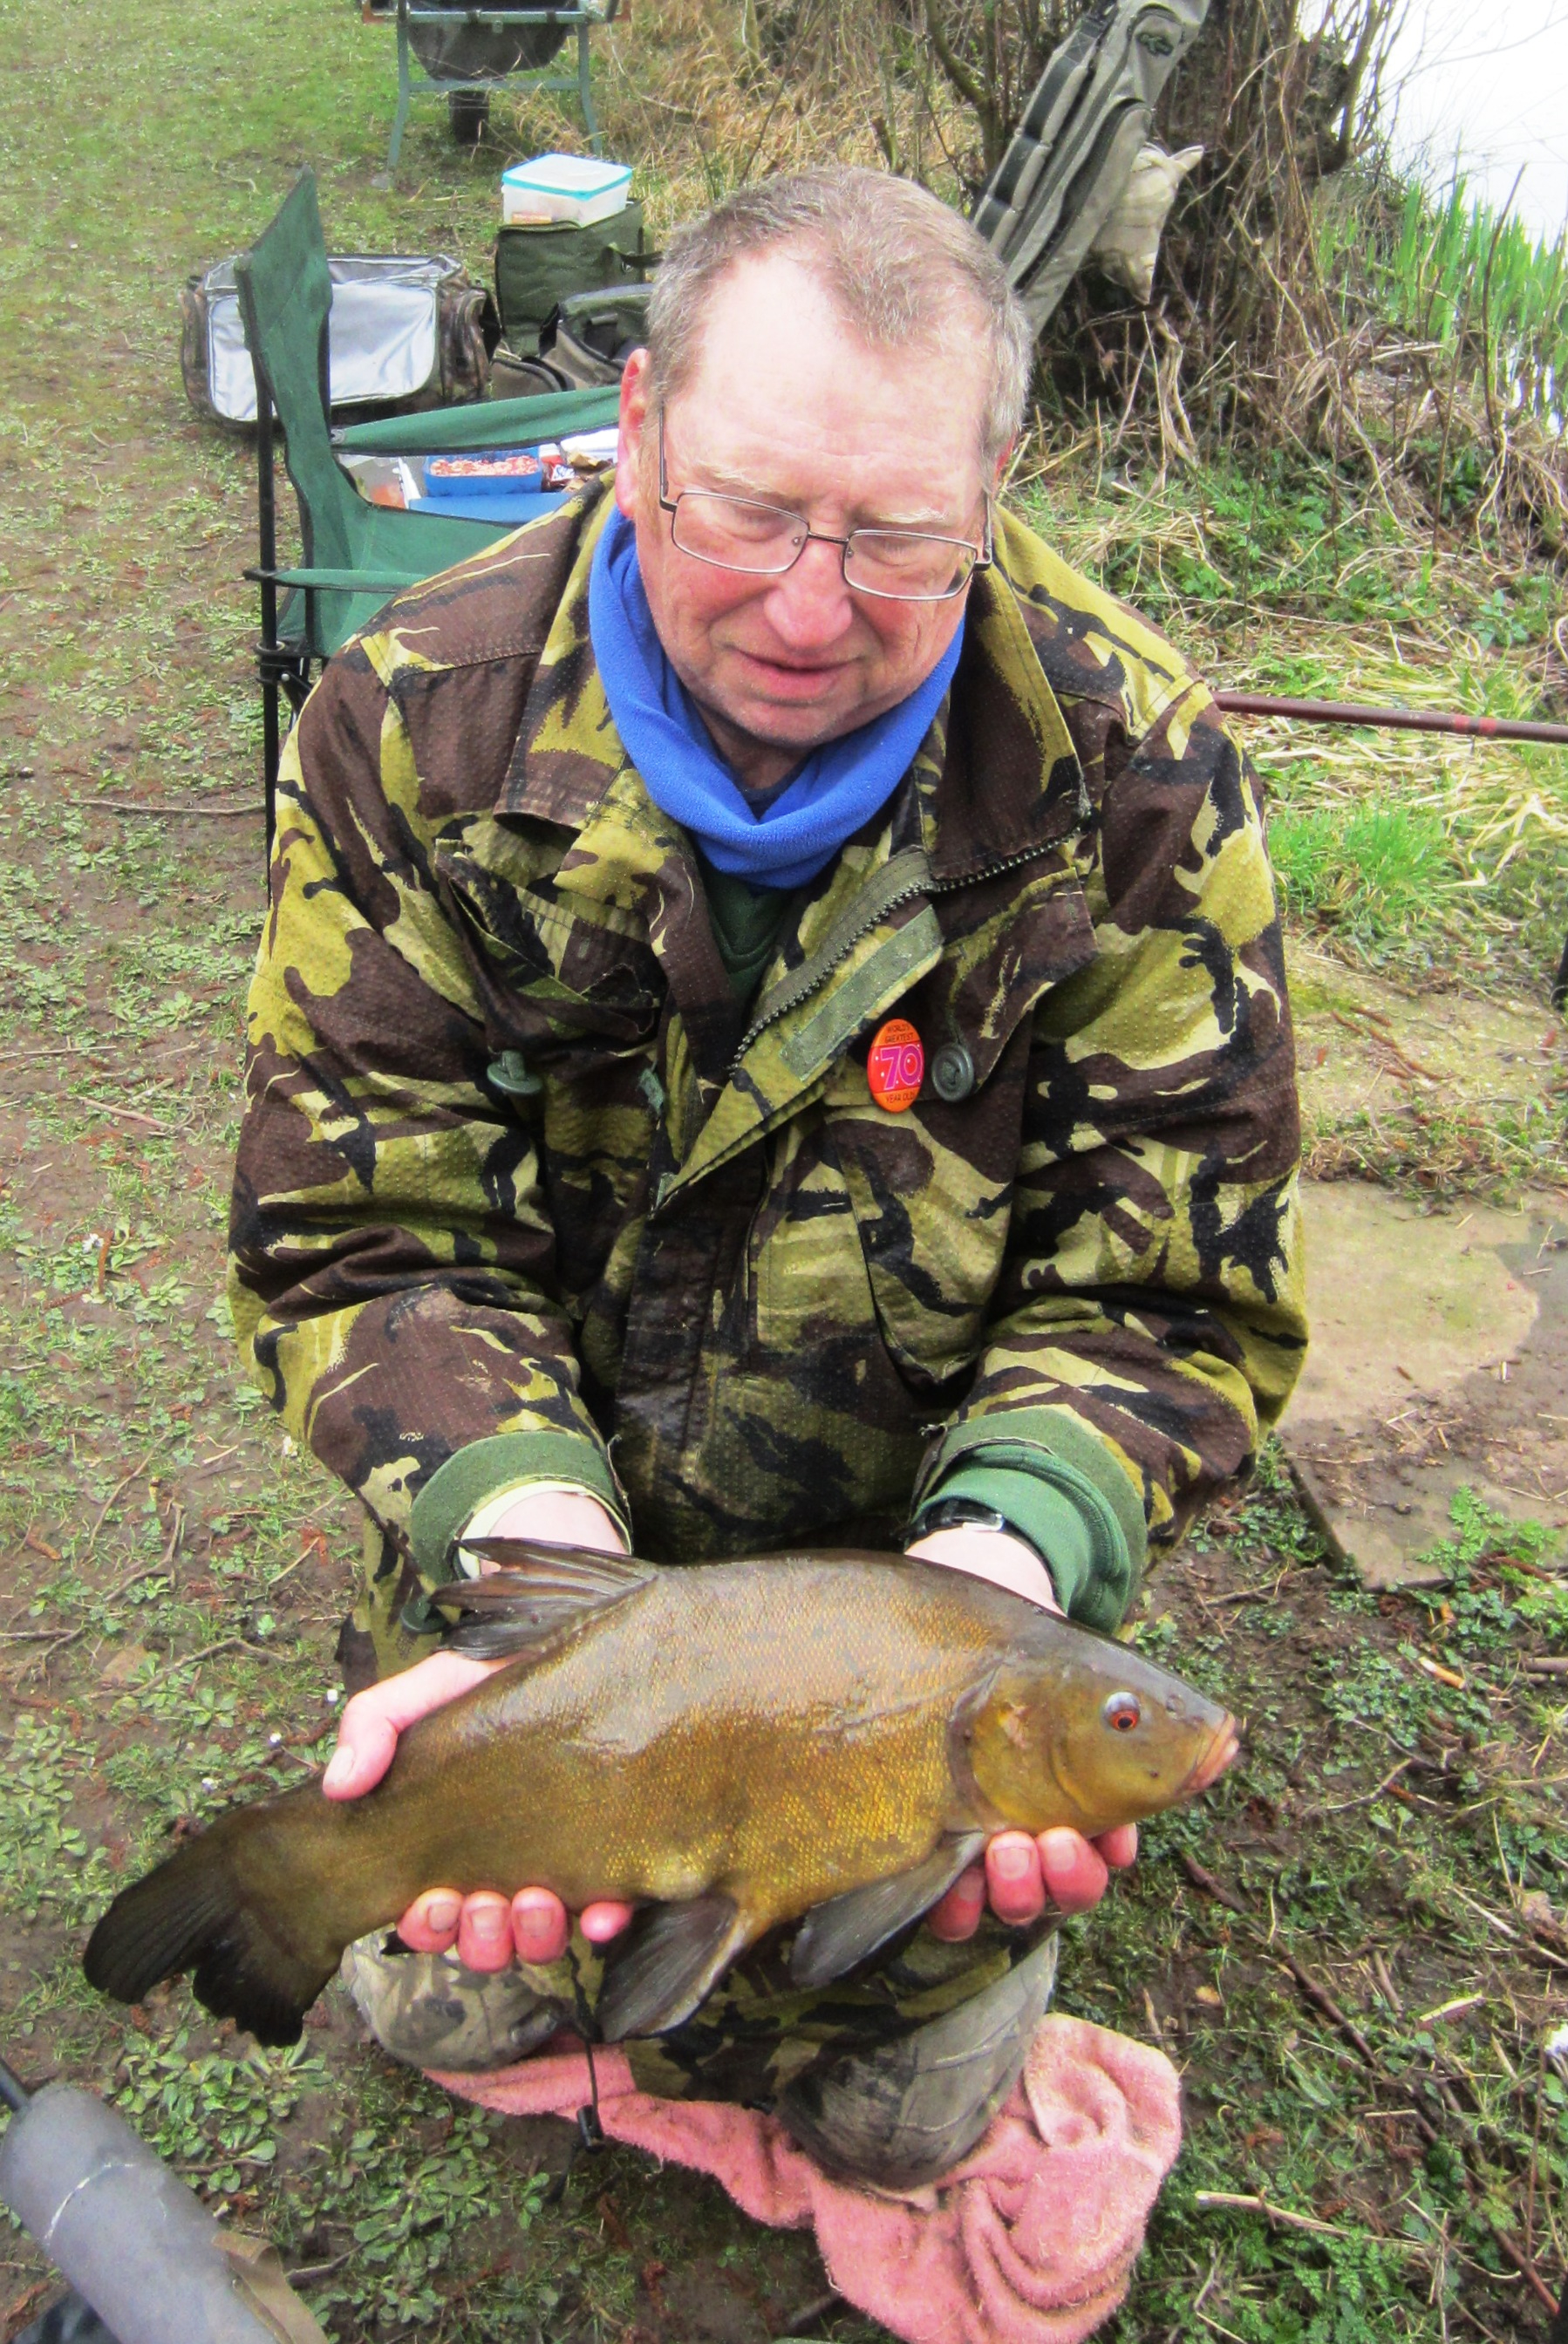 2021-03-22 Steve - Tench 3lb 12oz